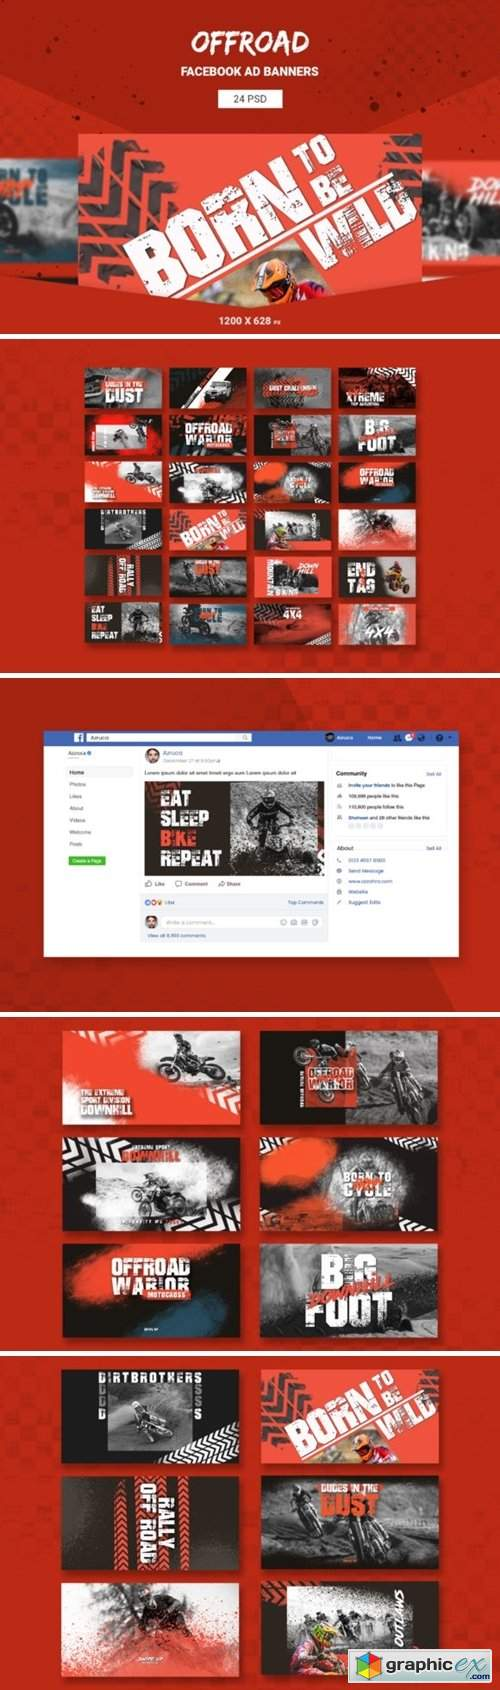 Offroad Facebook Ad Banners